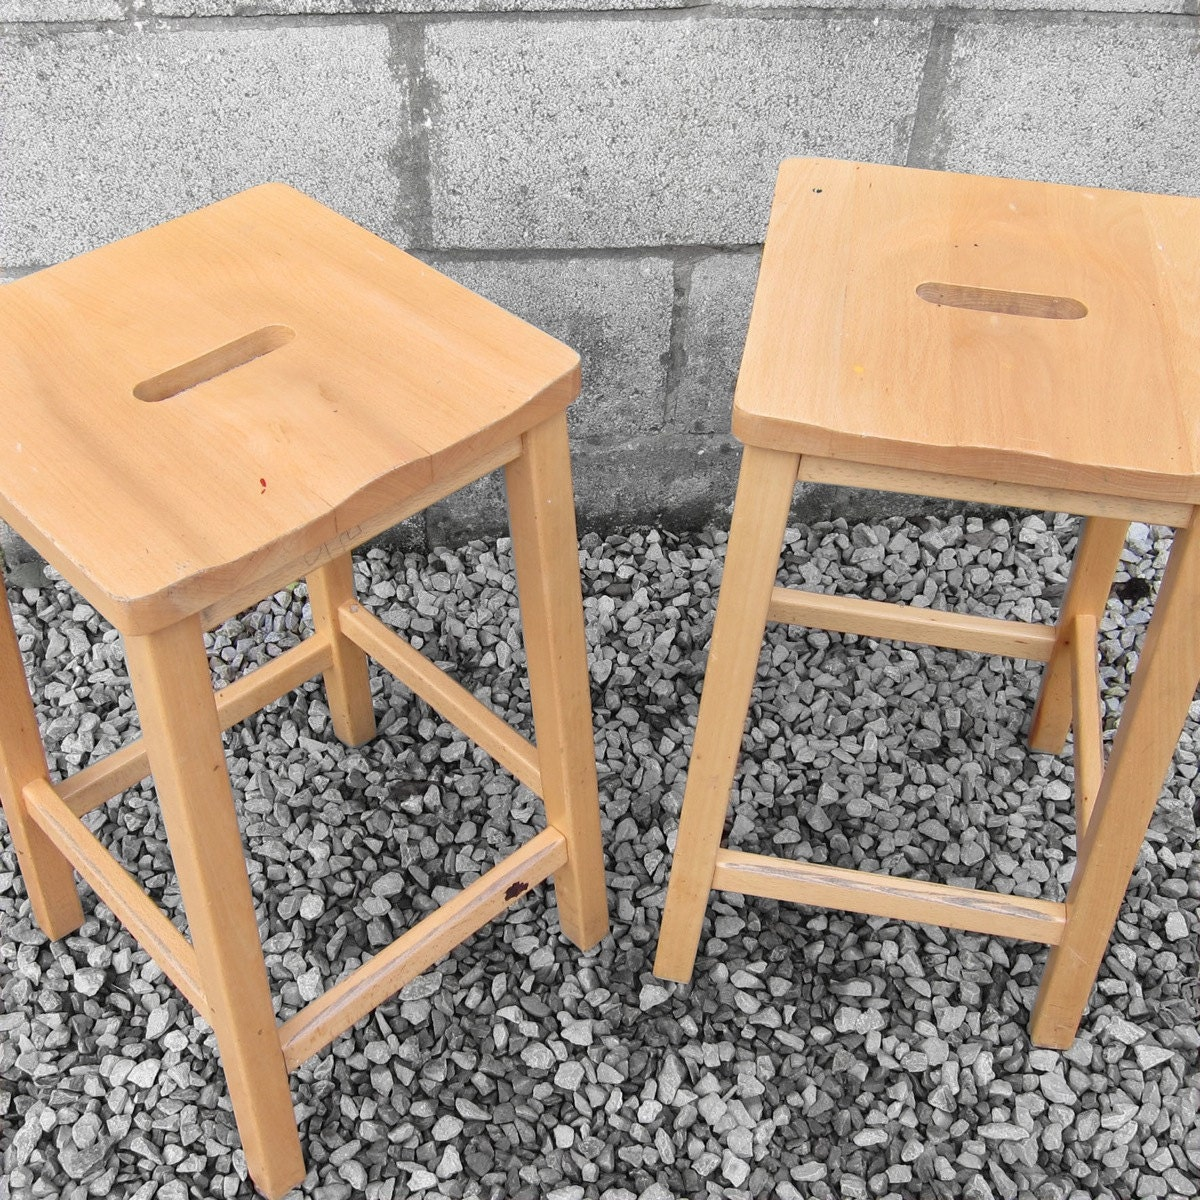 Superb img of Vintage Wooden Lab Stool School Seat by MagpiesVintageShop with #B26619 color and 1200x1200 pixels